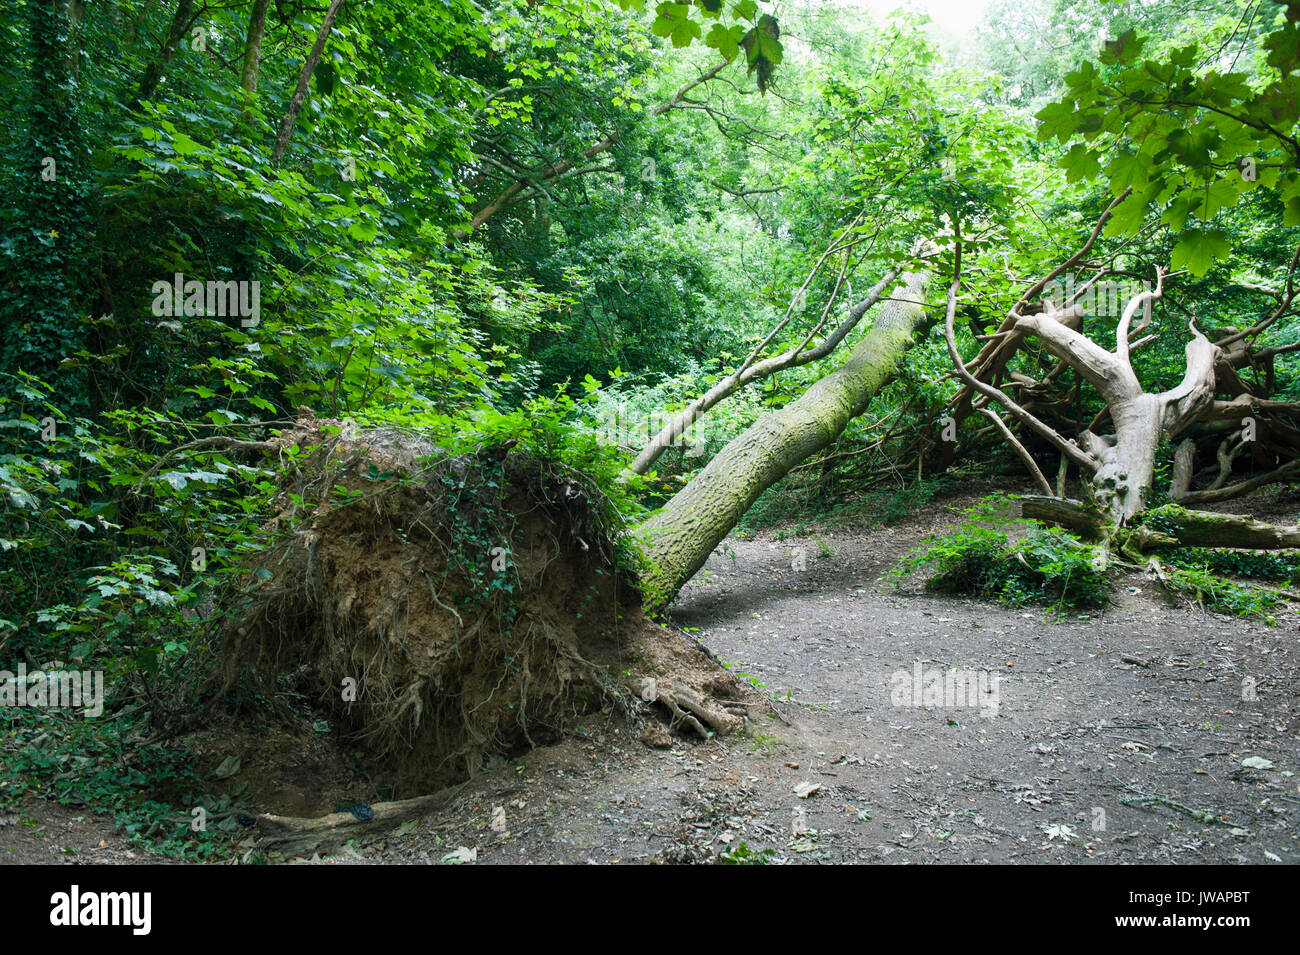 Fallen Tree at Tehidy Country Park Gardens in Cornwall - Stock Image